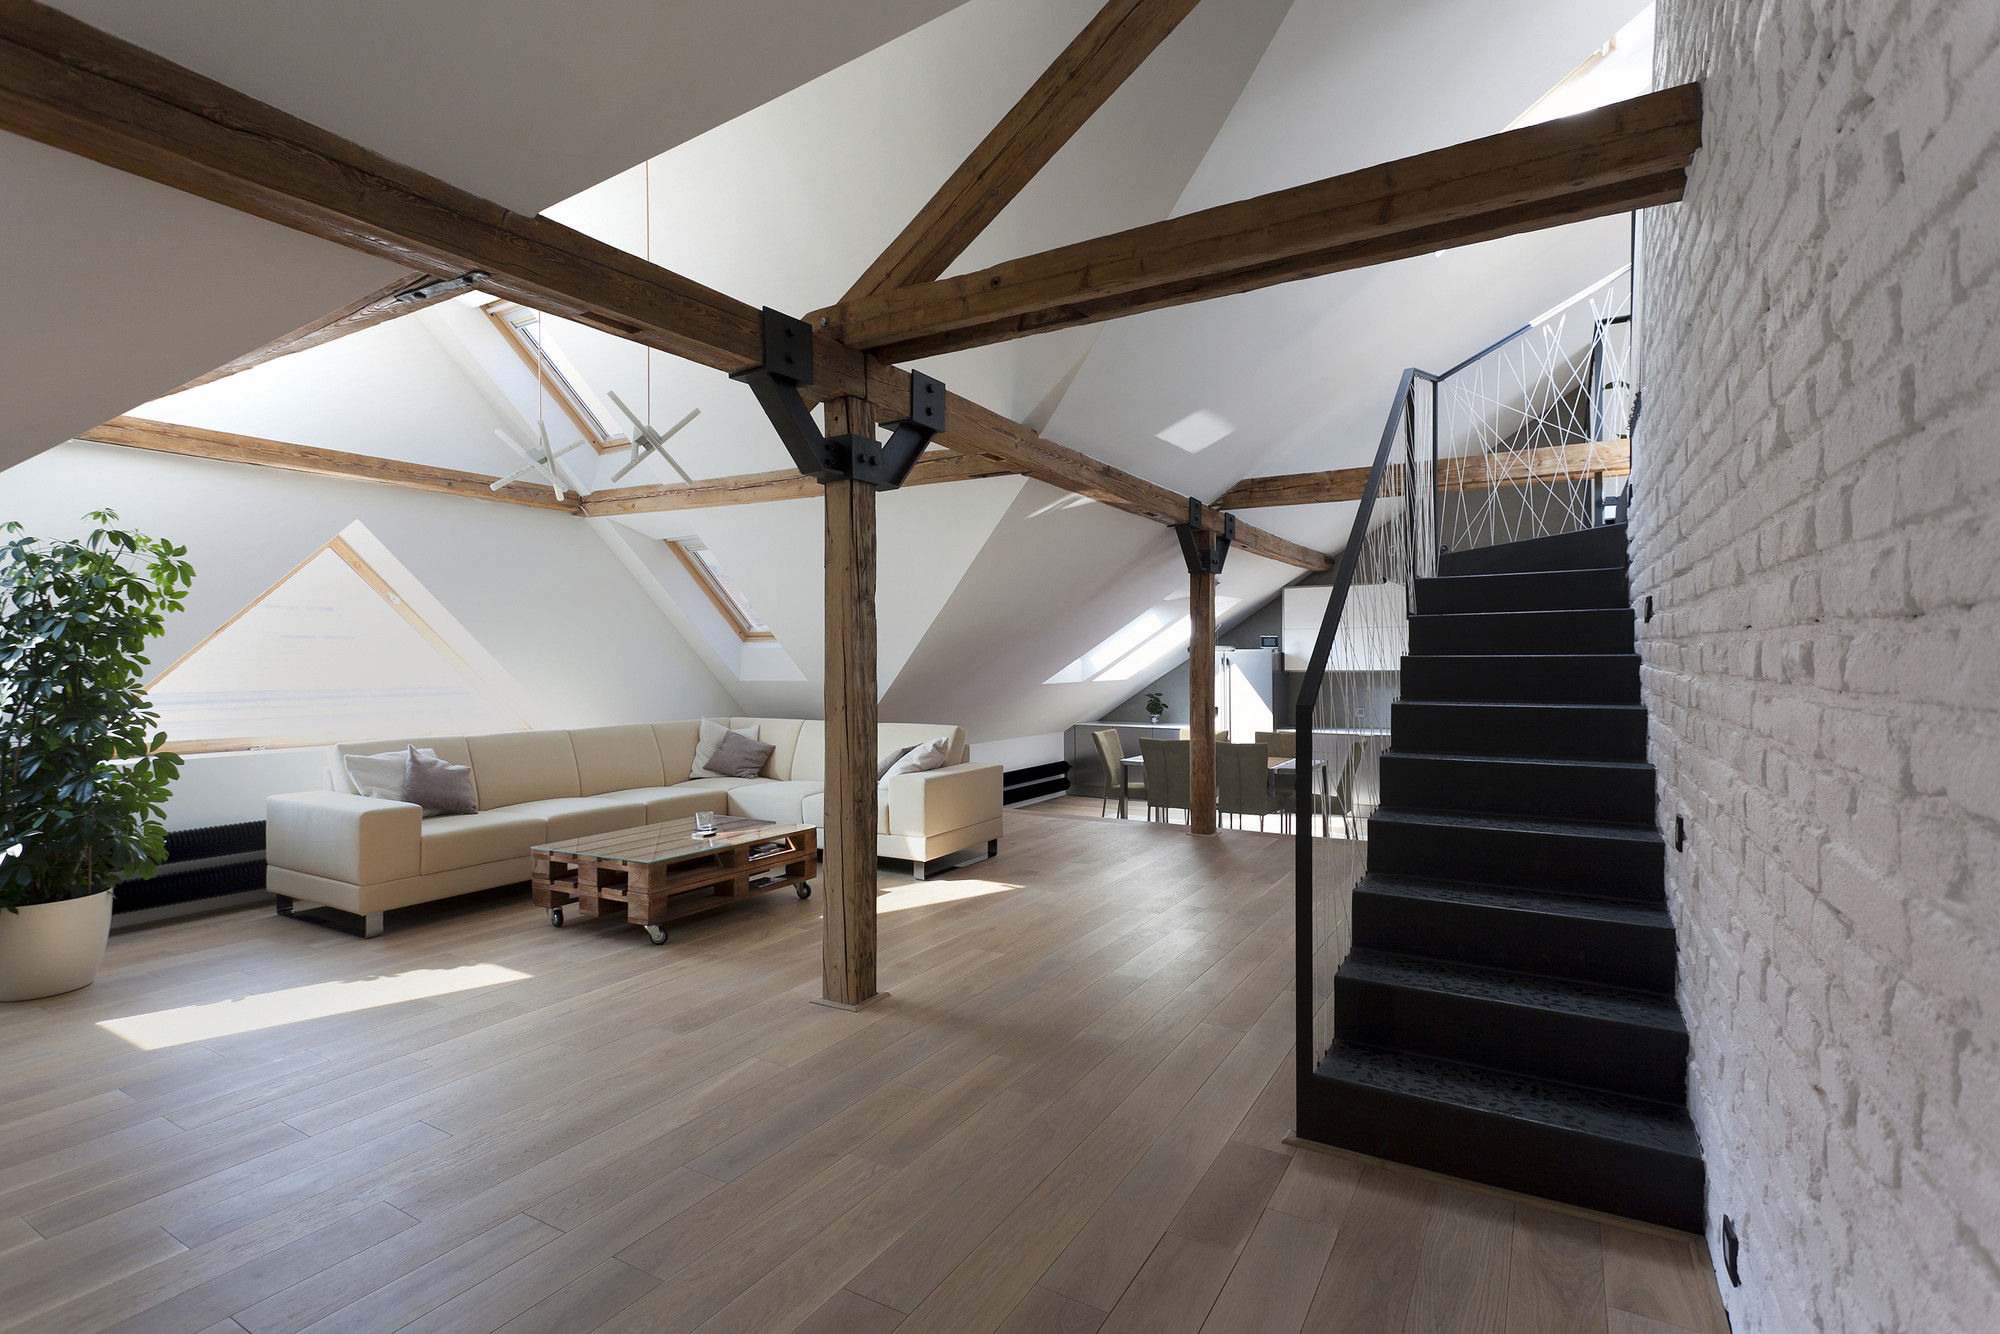 Attic loft reconstruction b architecture archdaily for Space architecture